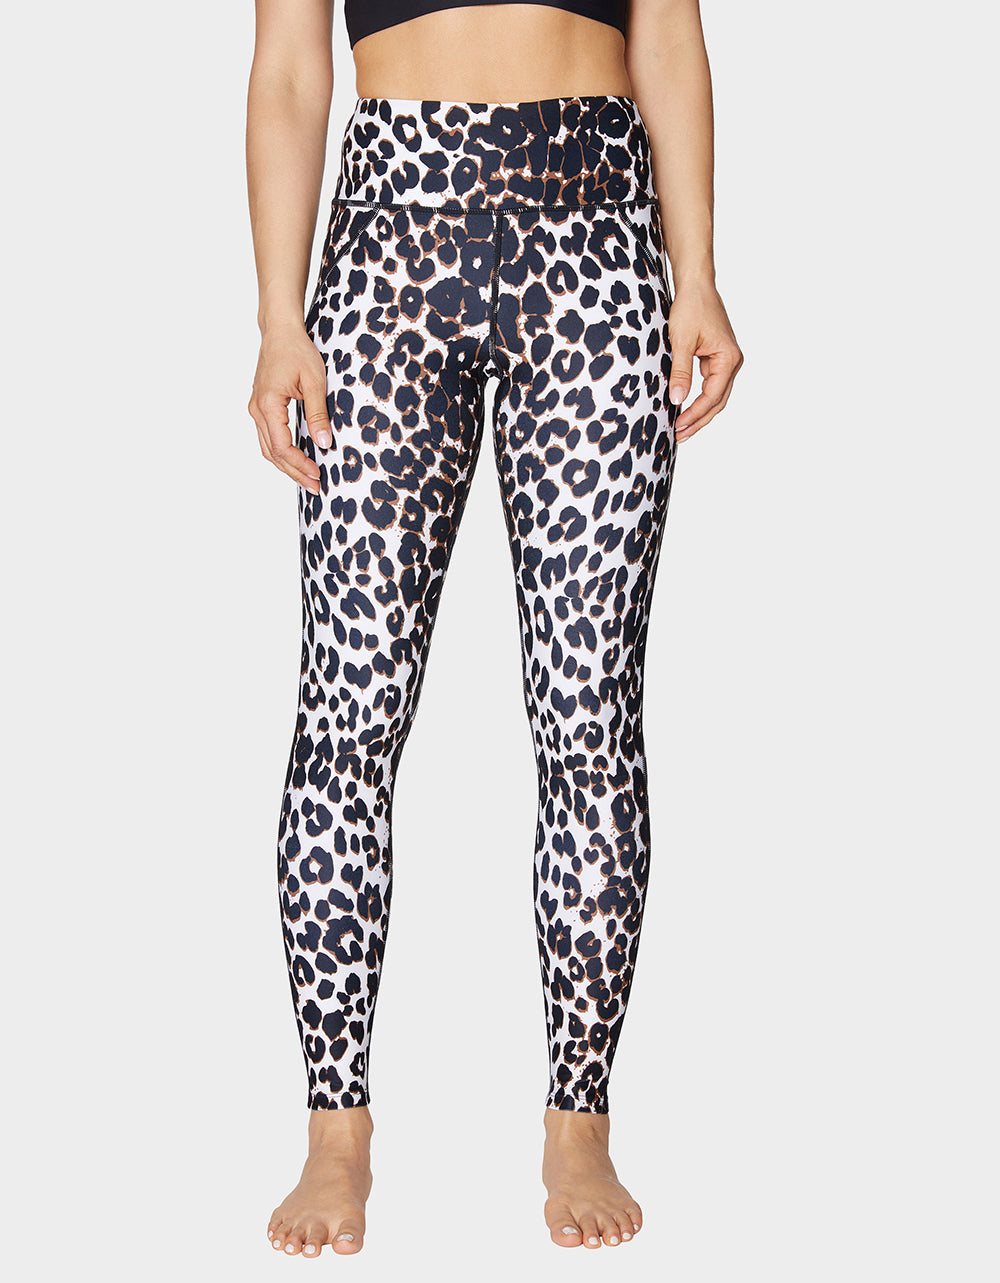 LEOPARD HIGH RISE LEGGING LEOPARD - APPAREL - Betsey Johnson